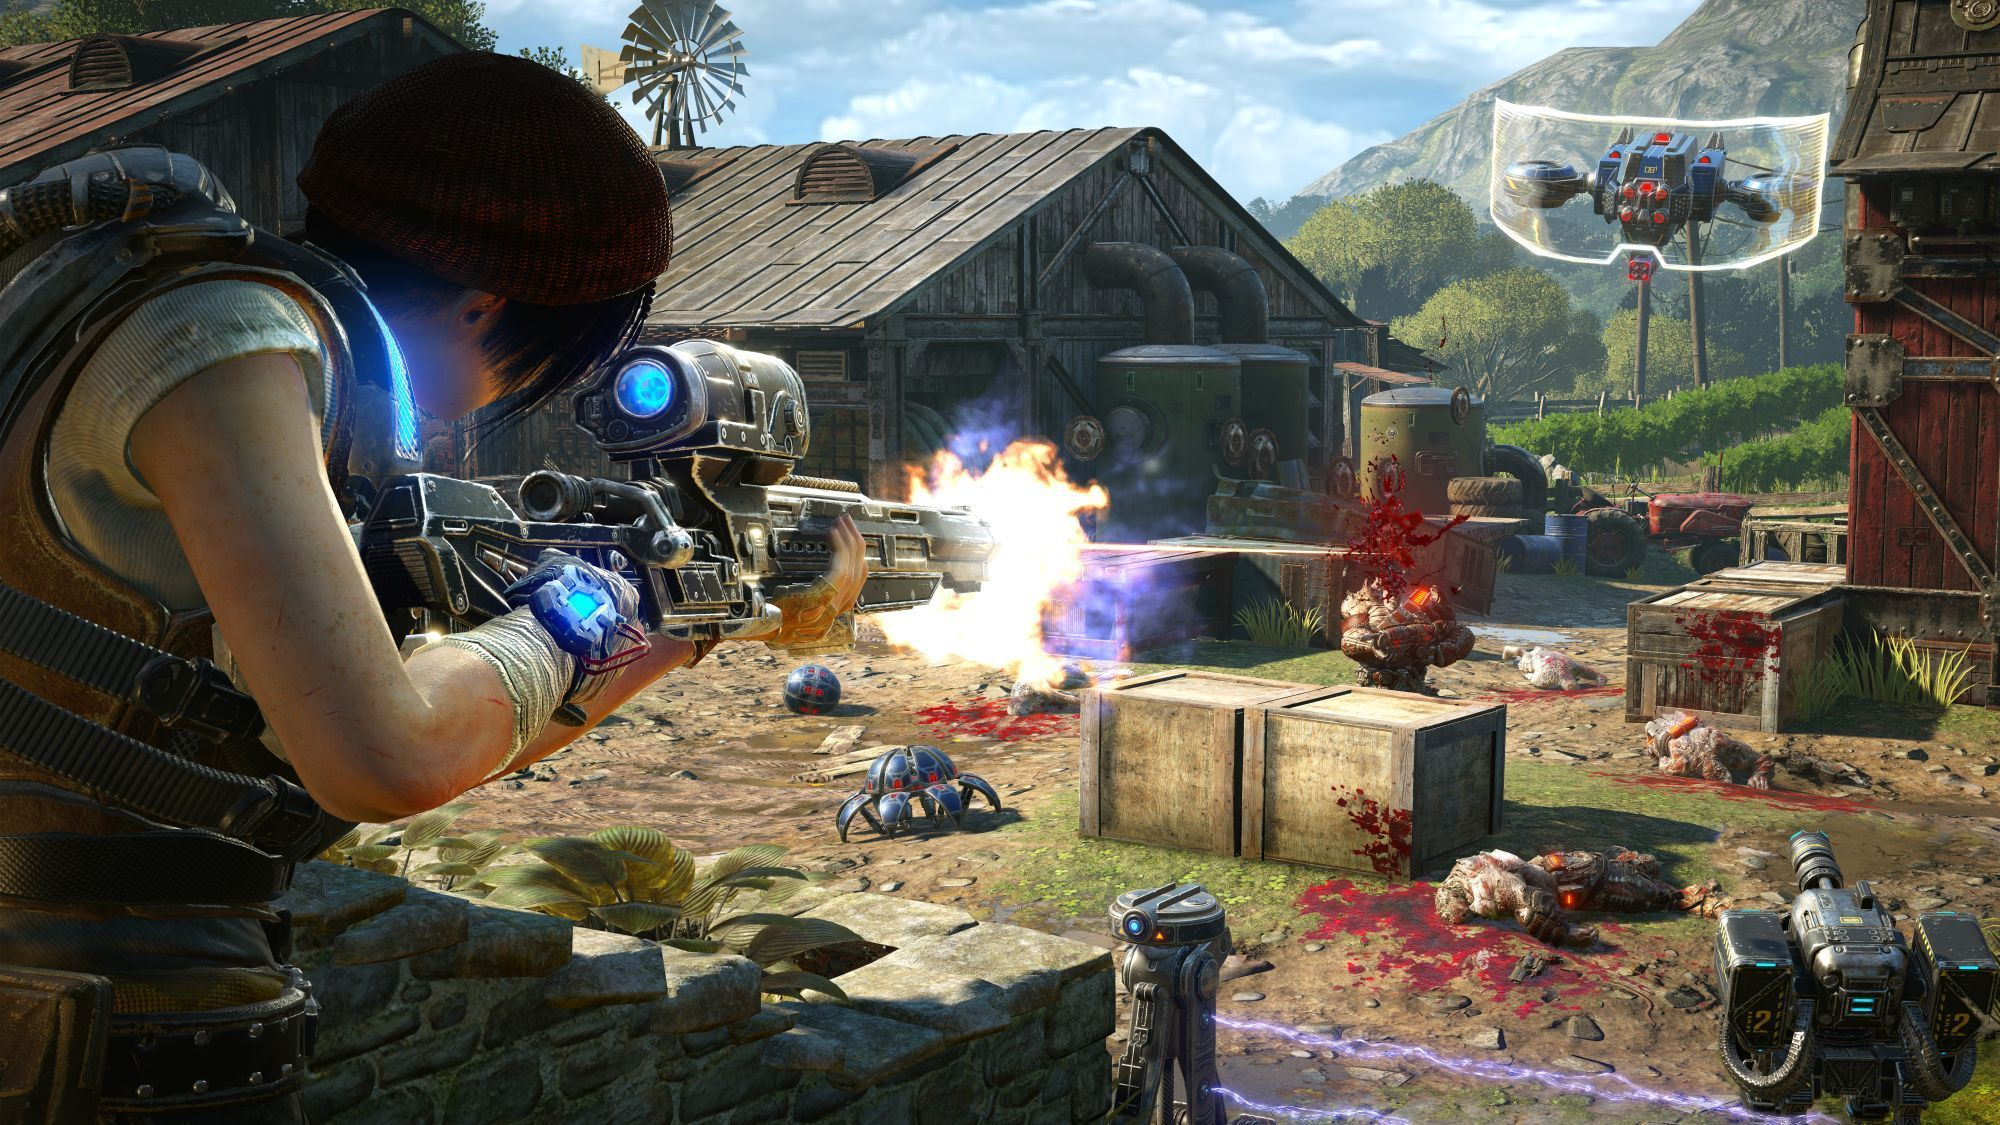 Gears of War 4 (PC) review: Passing the torch | PCWorld